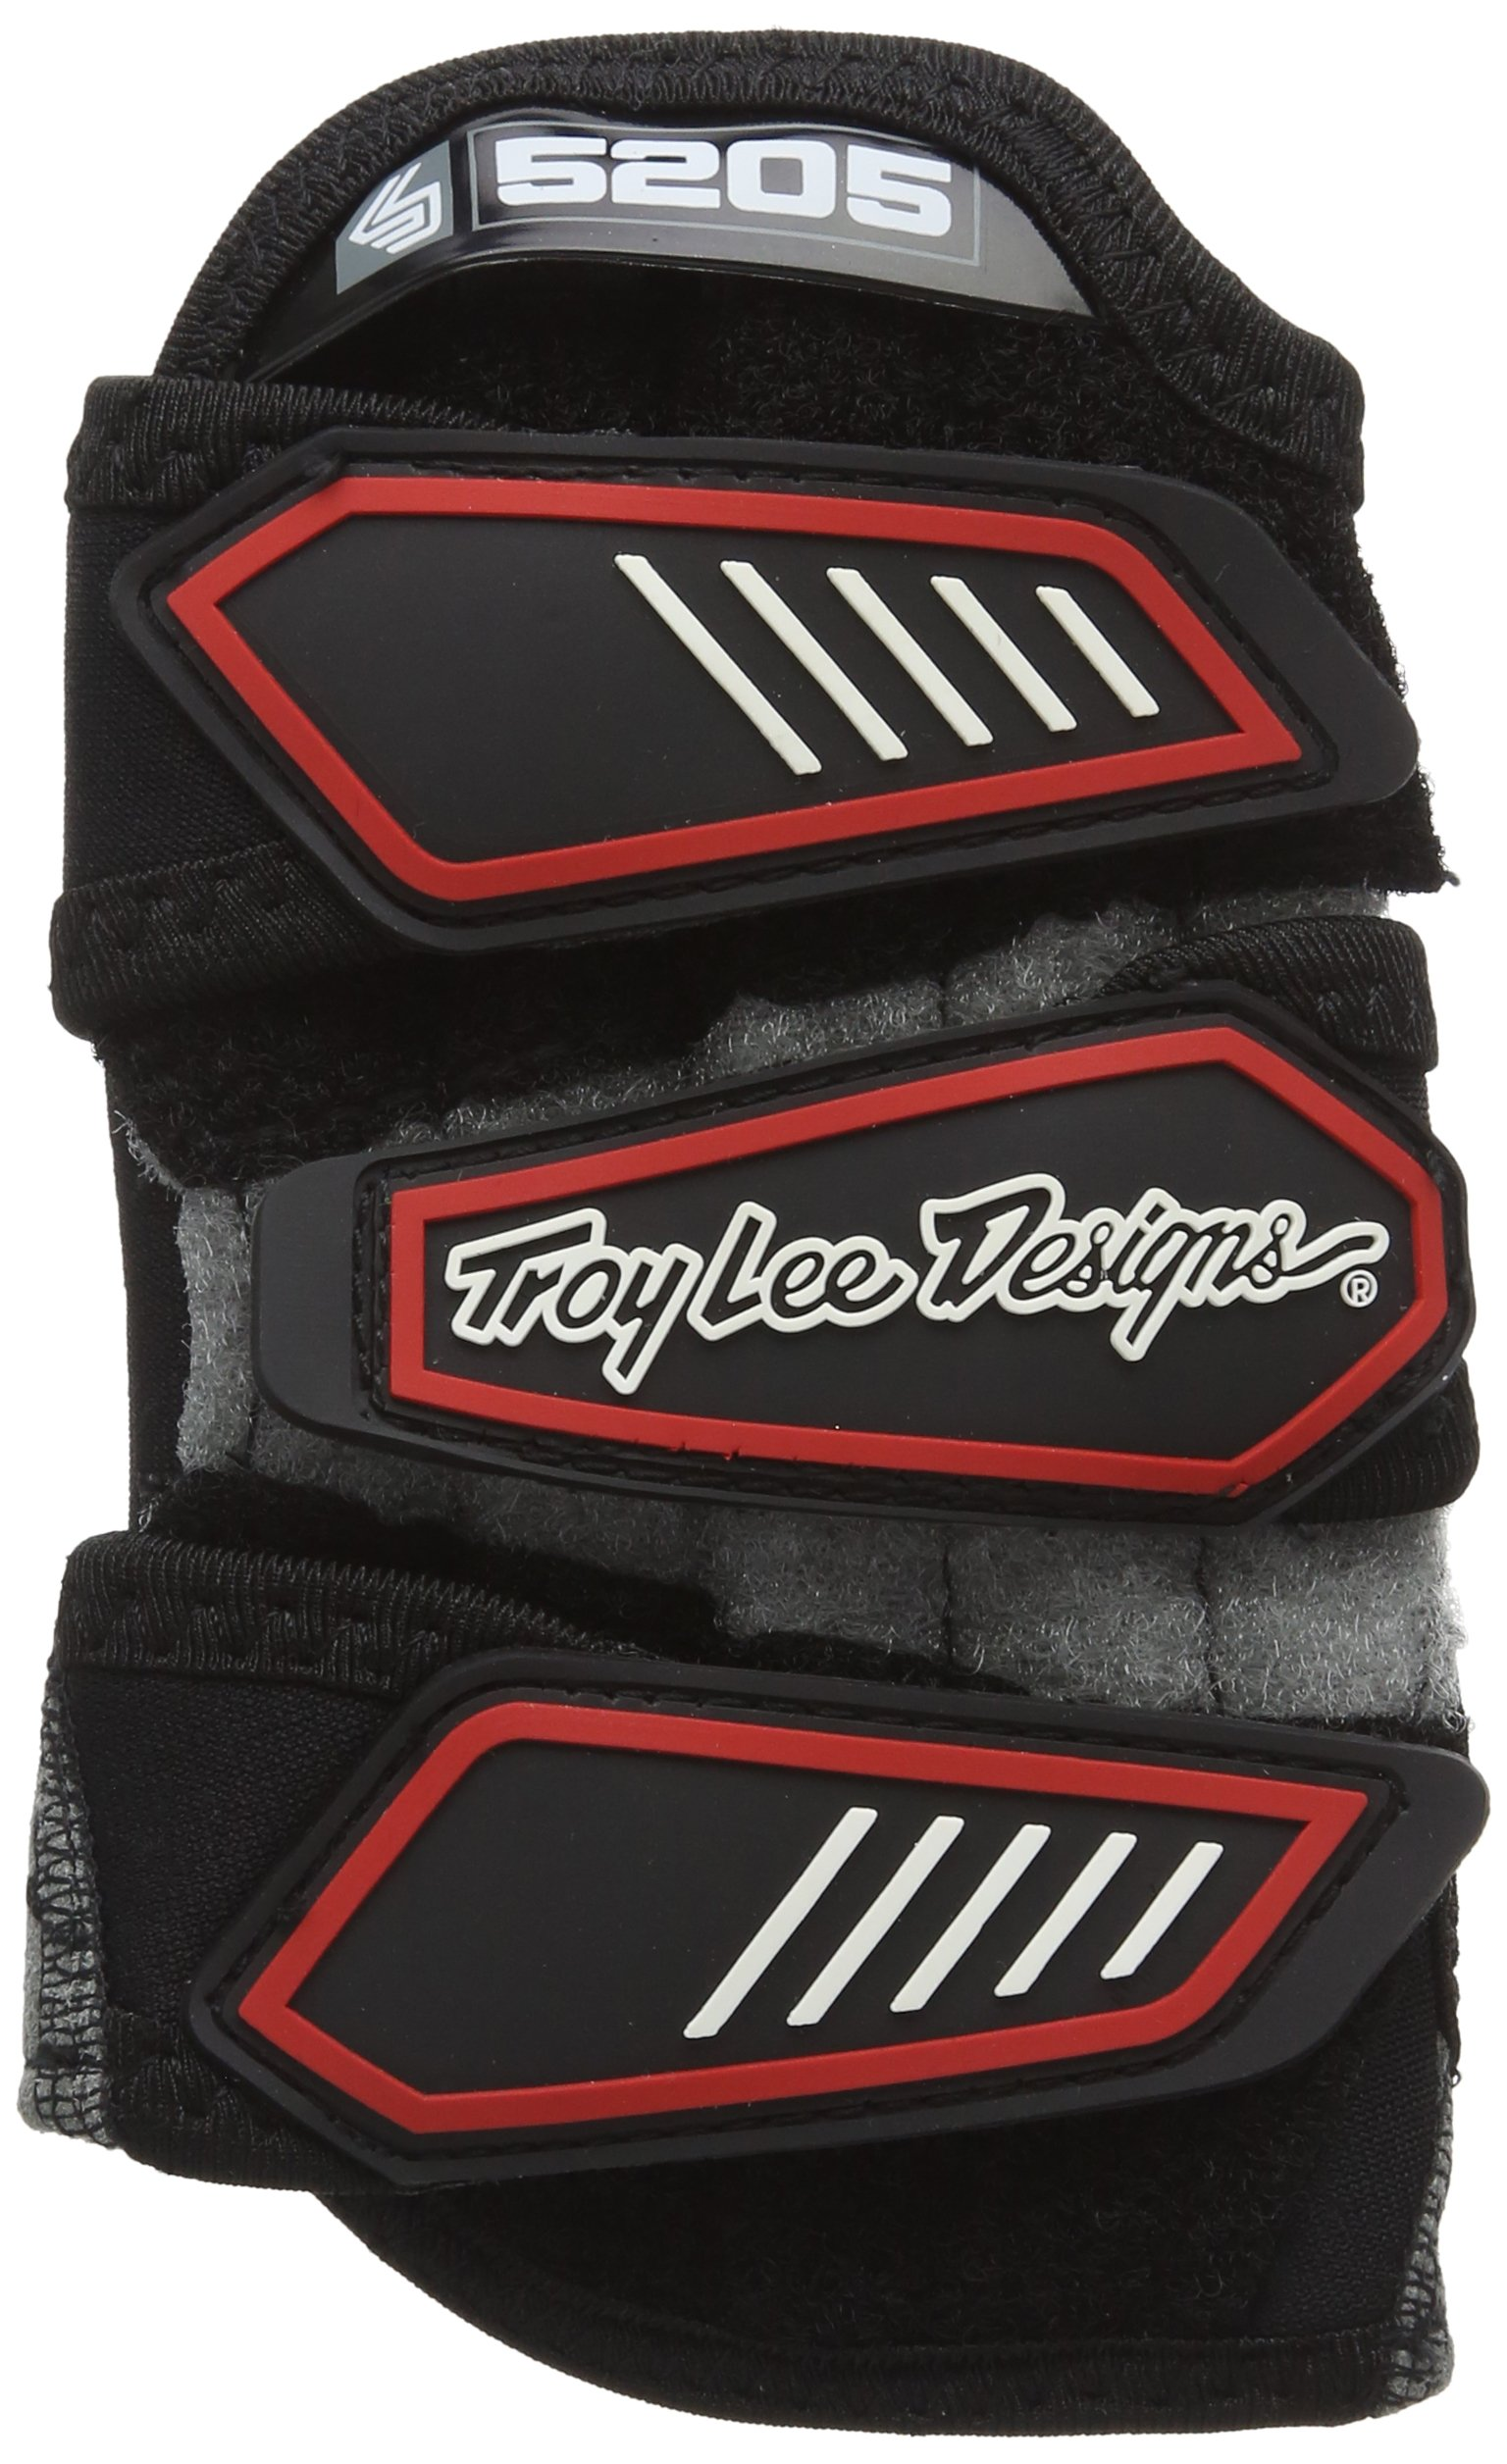 Troy Lee Designs WS 5205 Wrist Support Black, L/Right